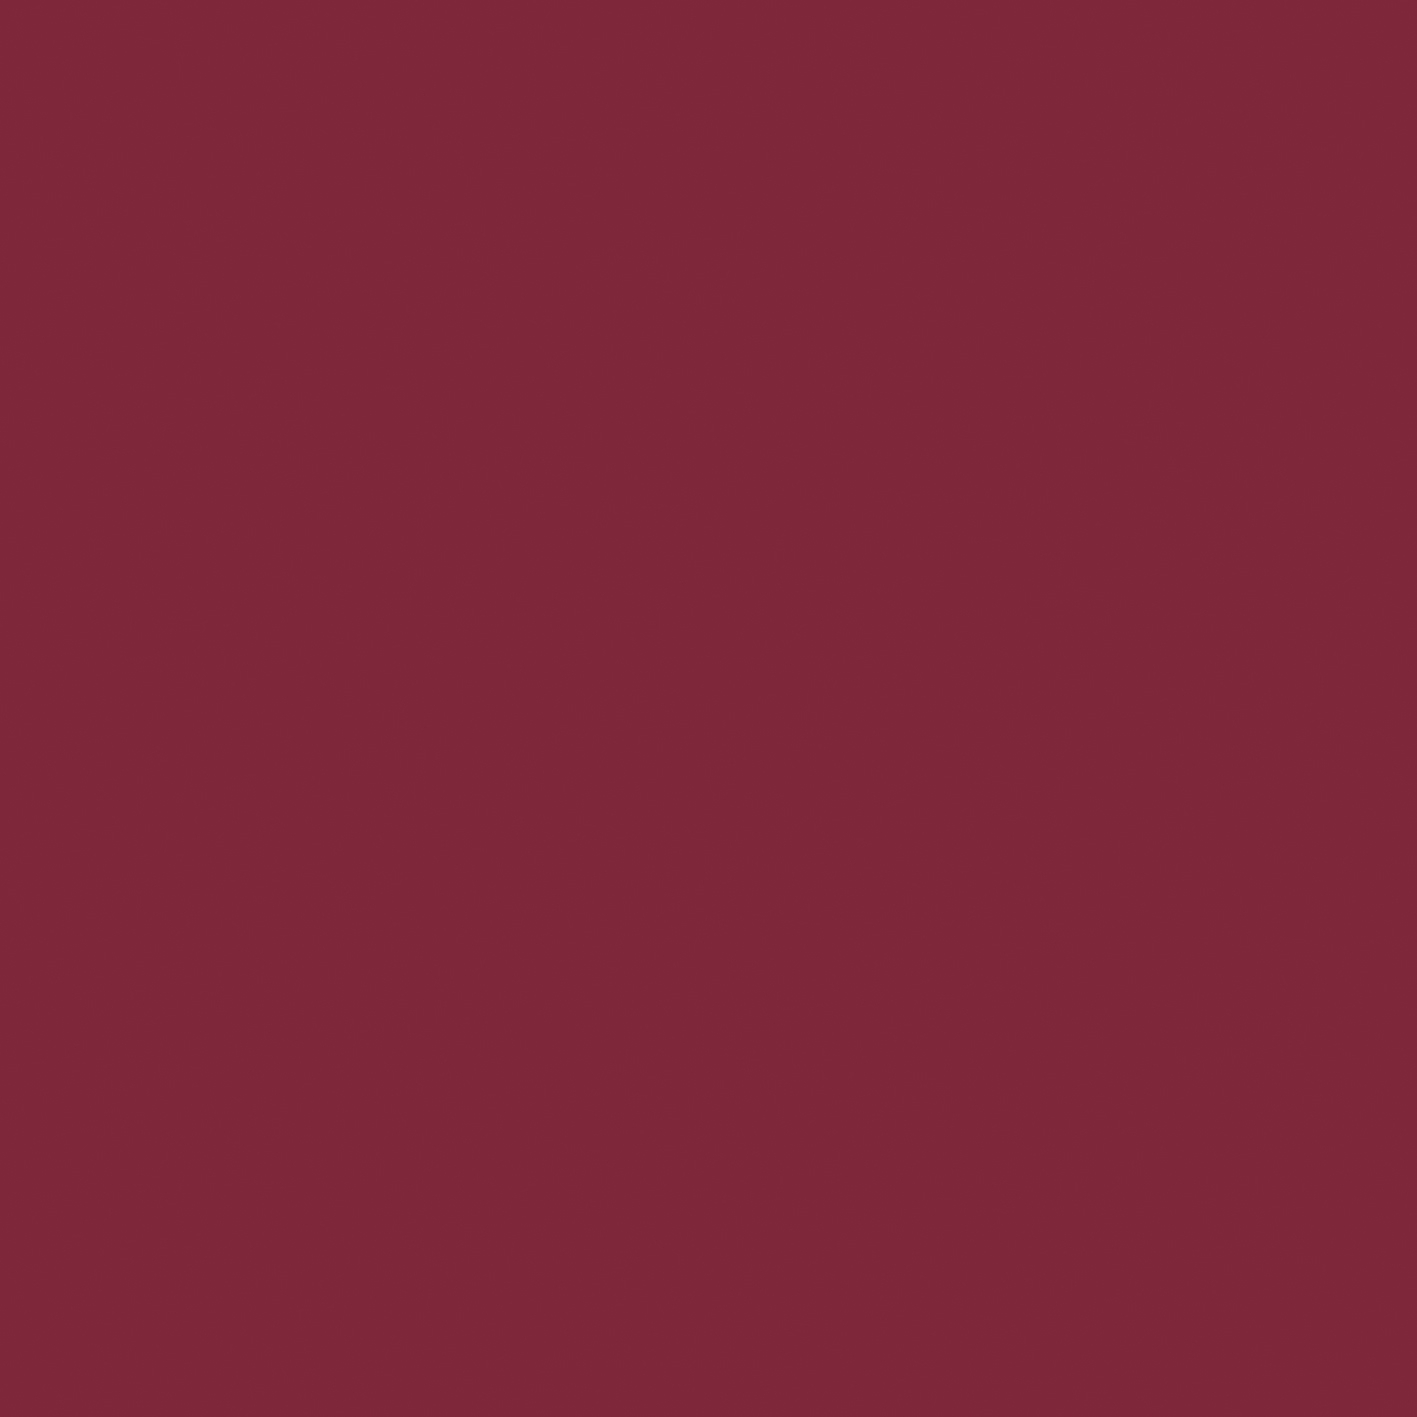 Buildtech 2.0 Bold Colors Burgundy Glossy 6mm 160 x 160